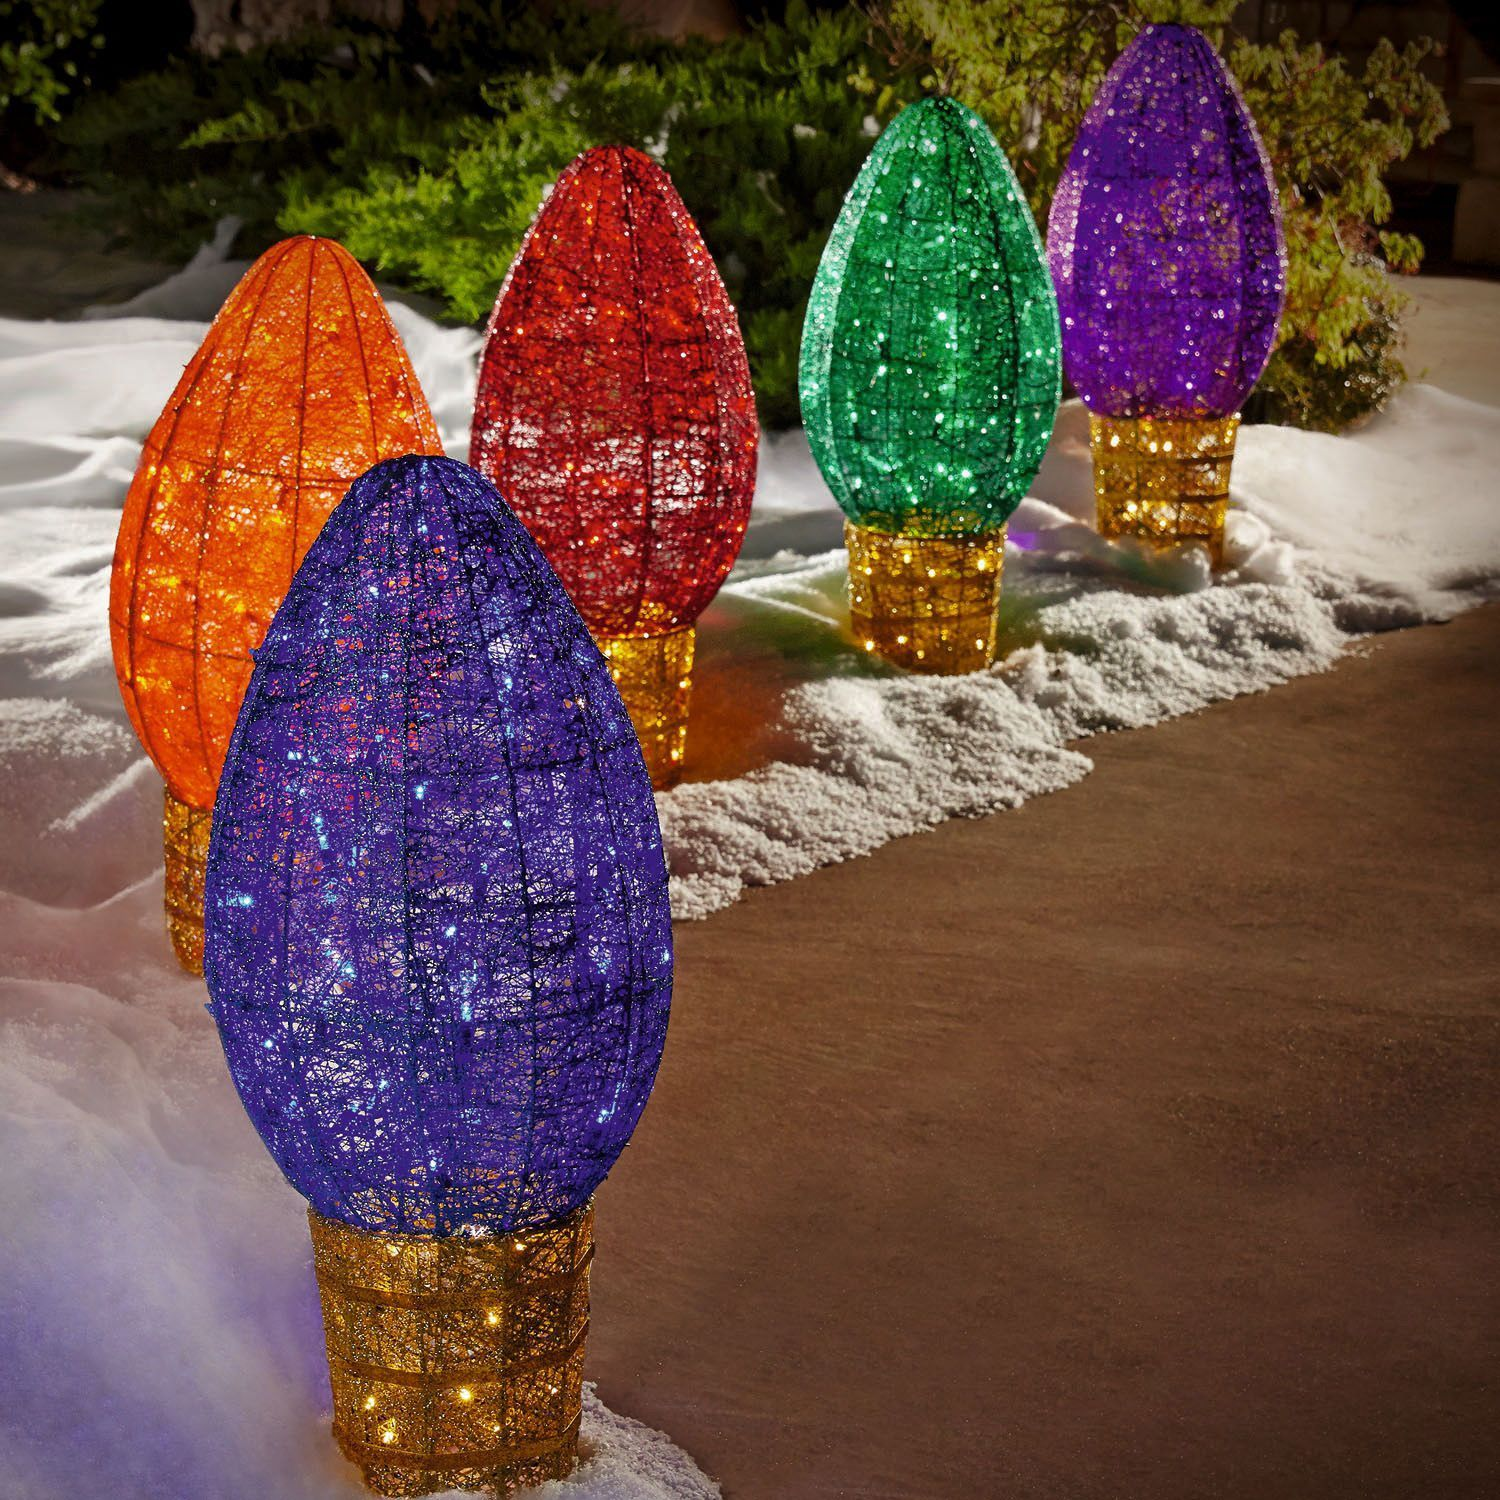 jumbo c9 outdoor light sculptures set of 5 sams club - Sams Club Christmas Decorations Outdoor